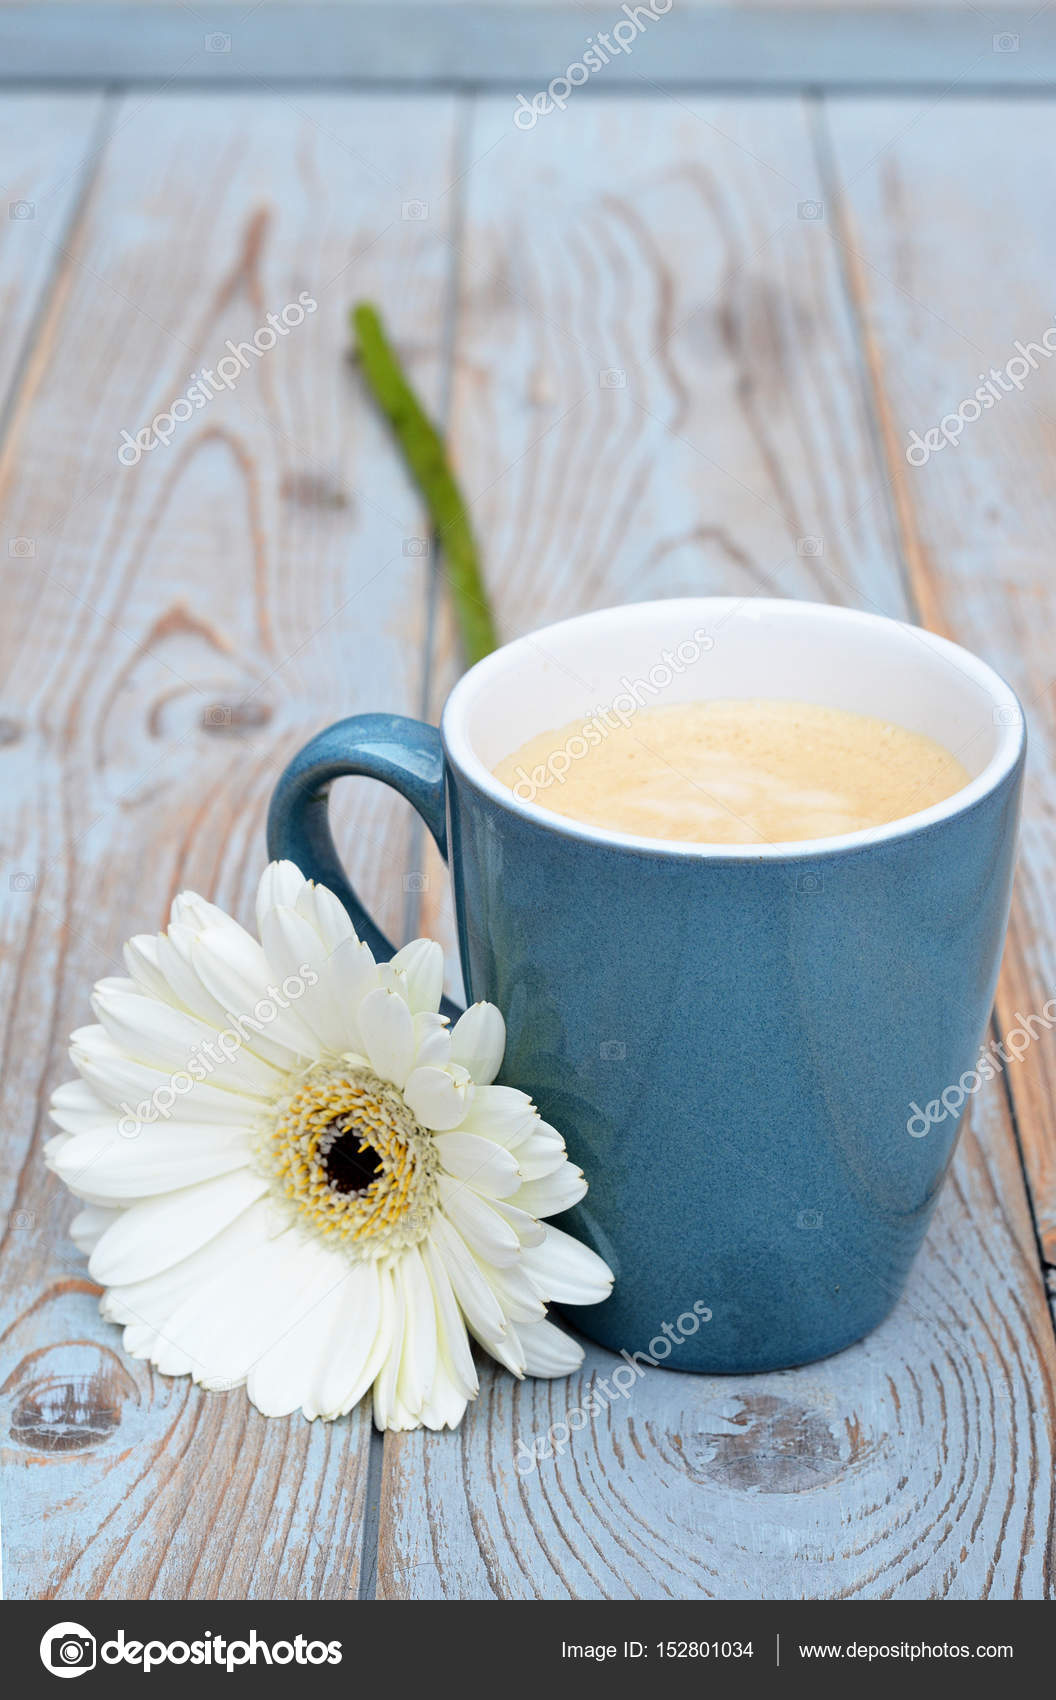 Cup Of Coffee In A Blue Mug On A Old Used Grey Wooden Background With A White Gerber Daisy Decoration Stock Photo Image By Trinetuzun 152801034